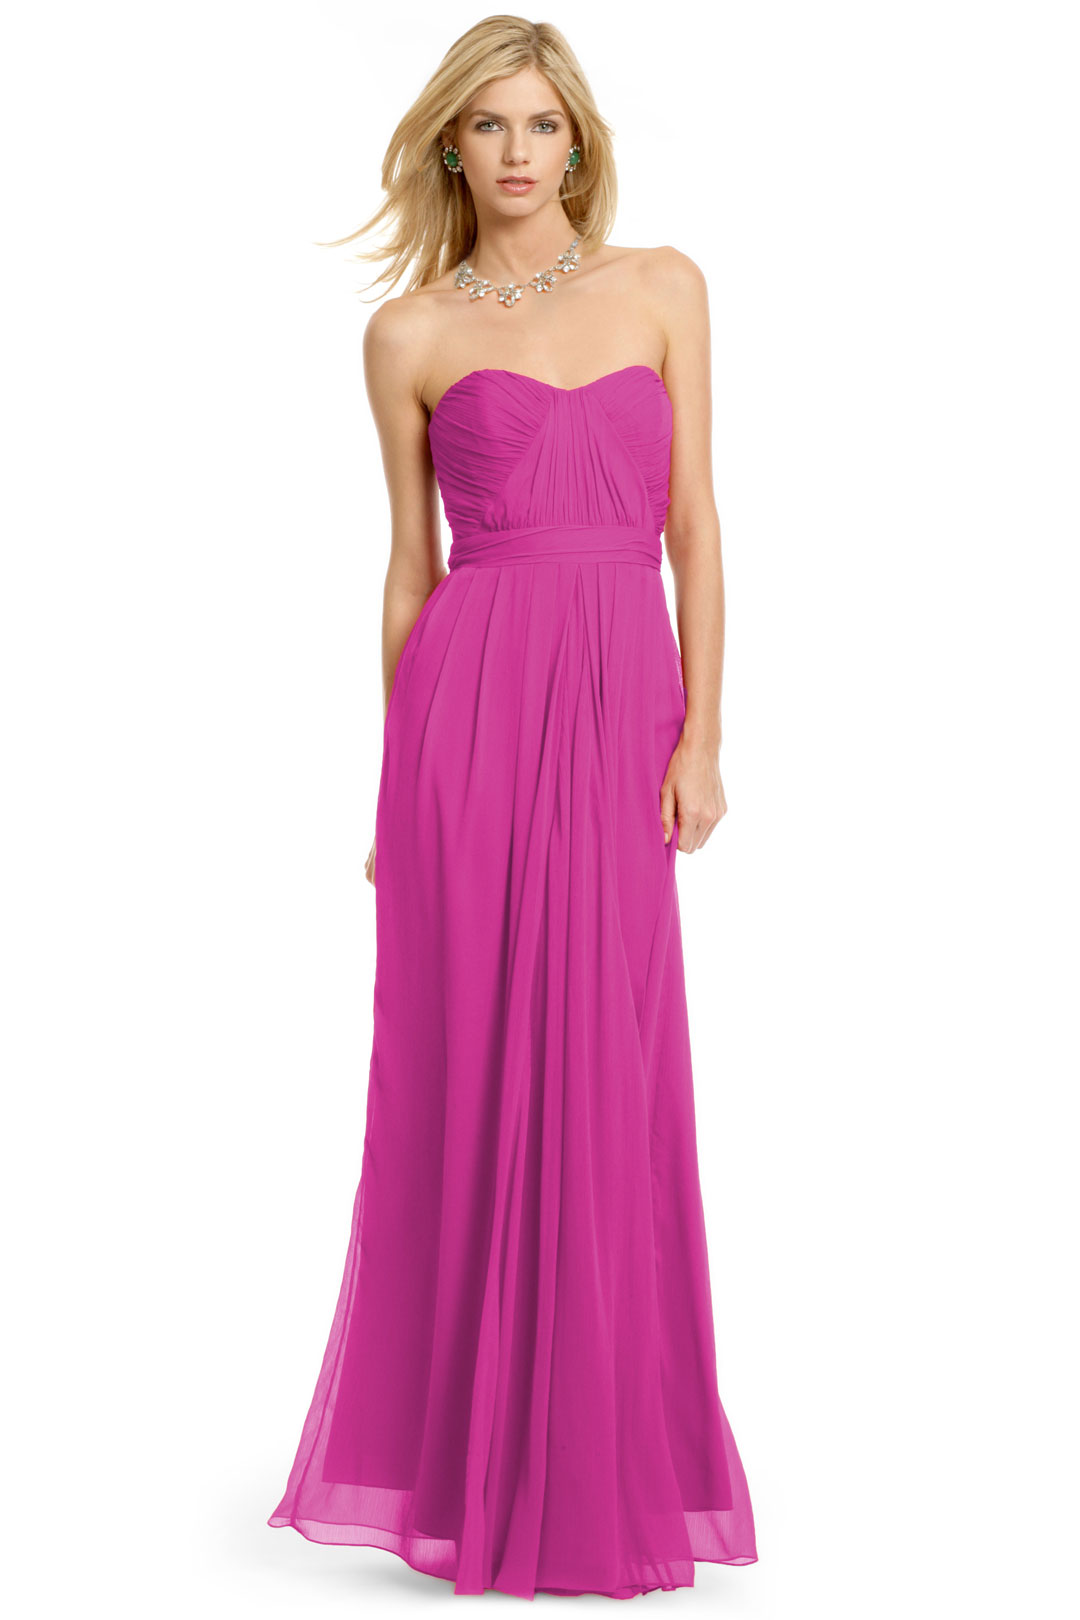 Fluorescent Chiffon Gown by Badgley Mischka at $80 | Rent The Runway